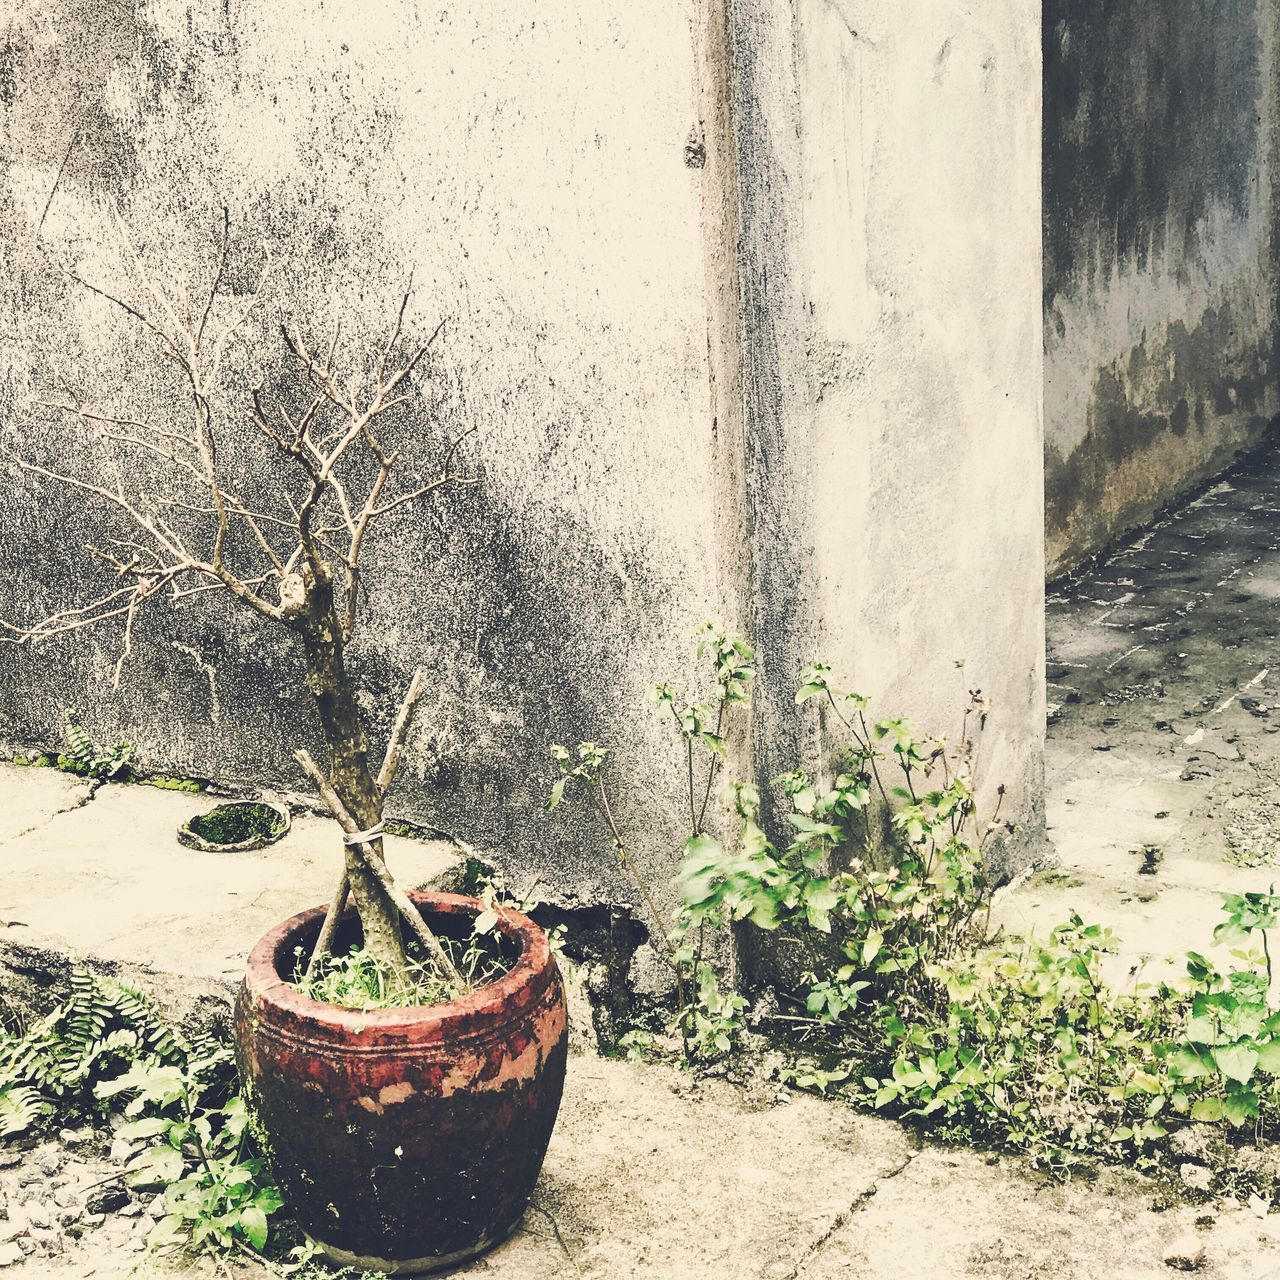 growth, plant, potted plant, no people, nature, day, outdoors, leaf, tree, beauty in nature, close-up, freshness